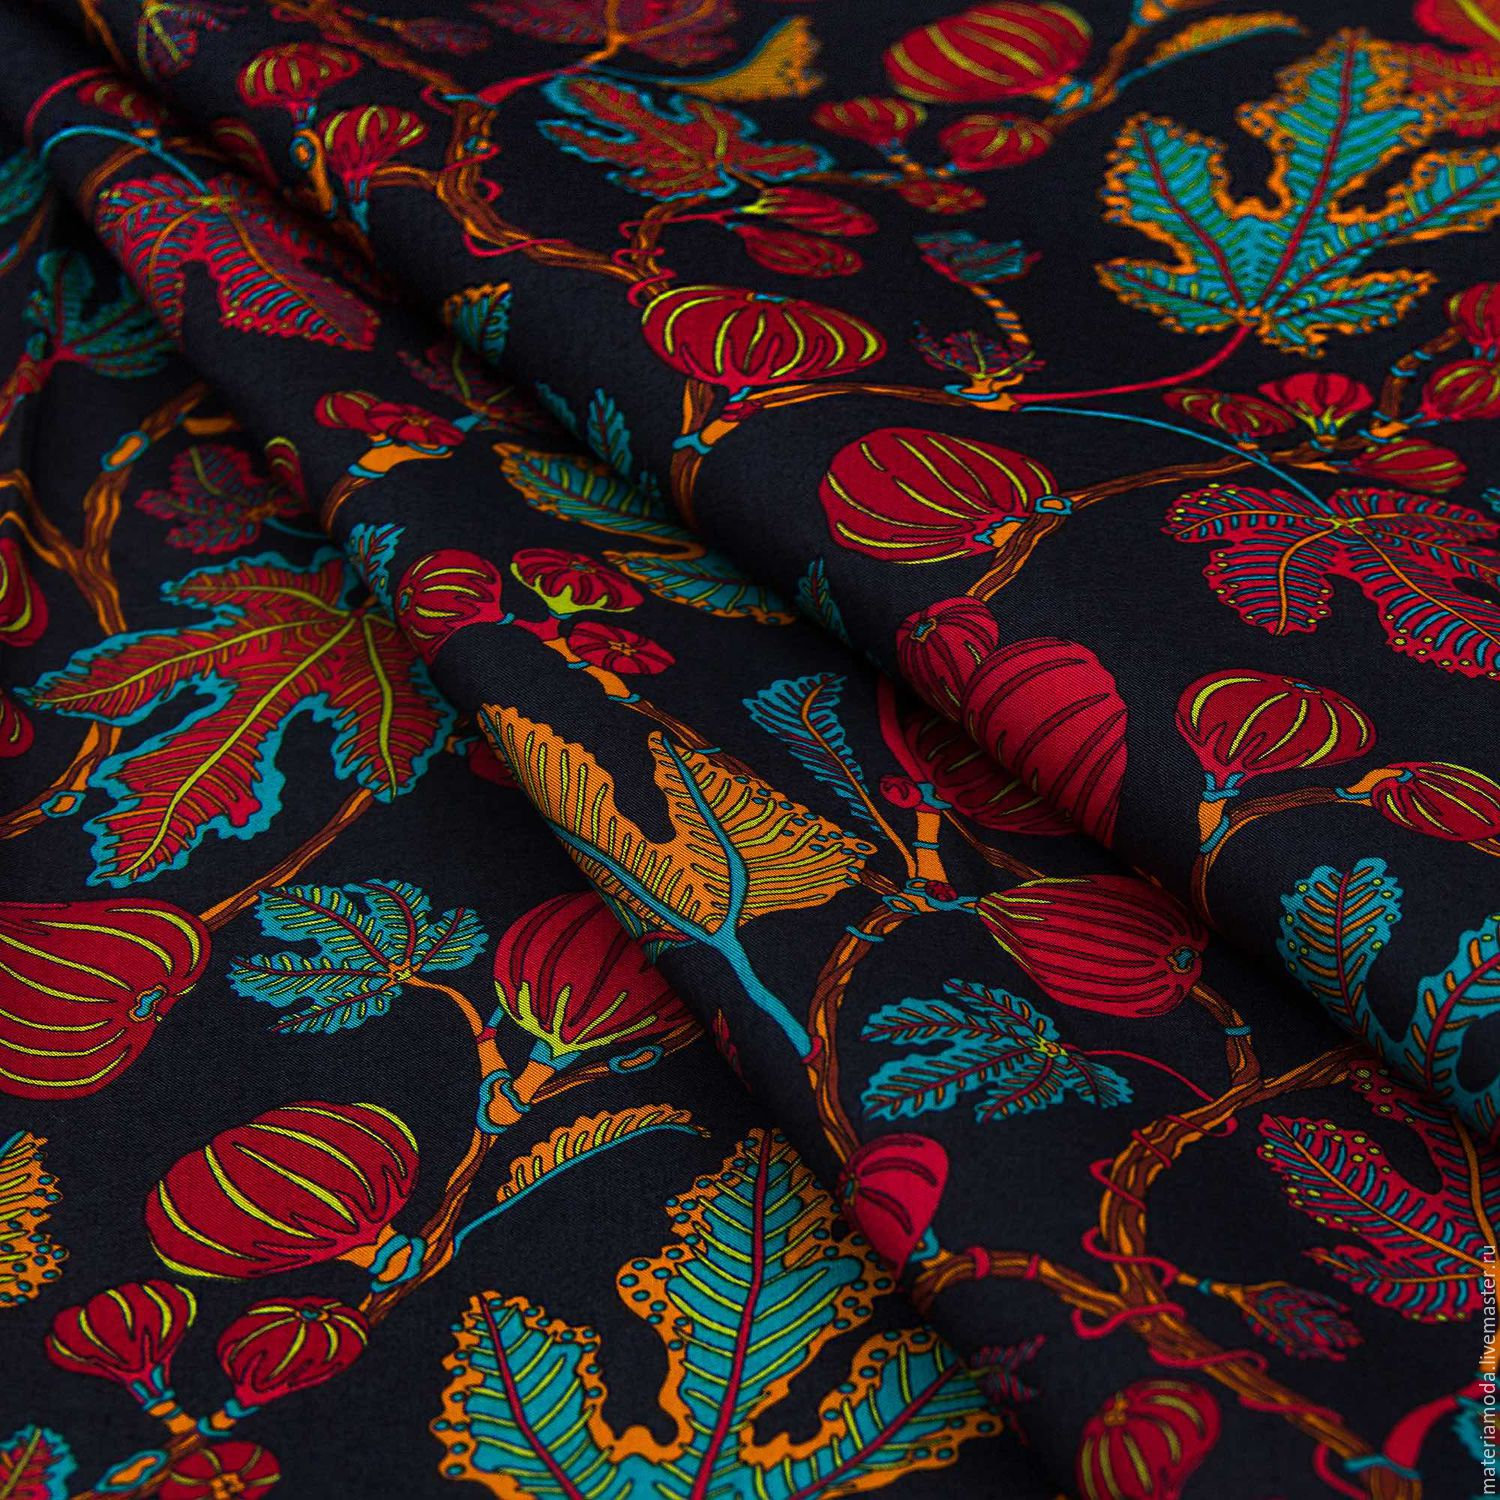 Embroidered sheer fashion fabric 8